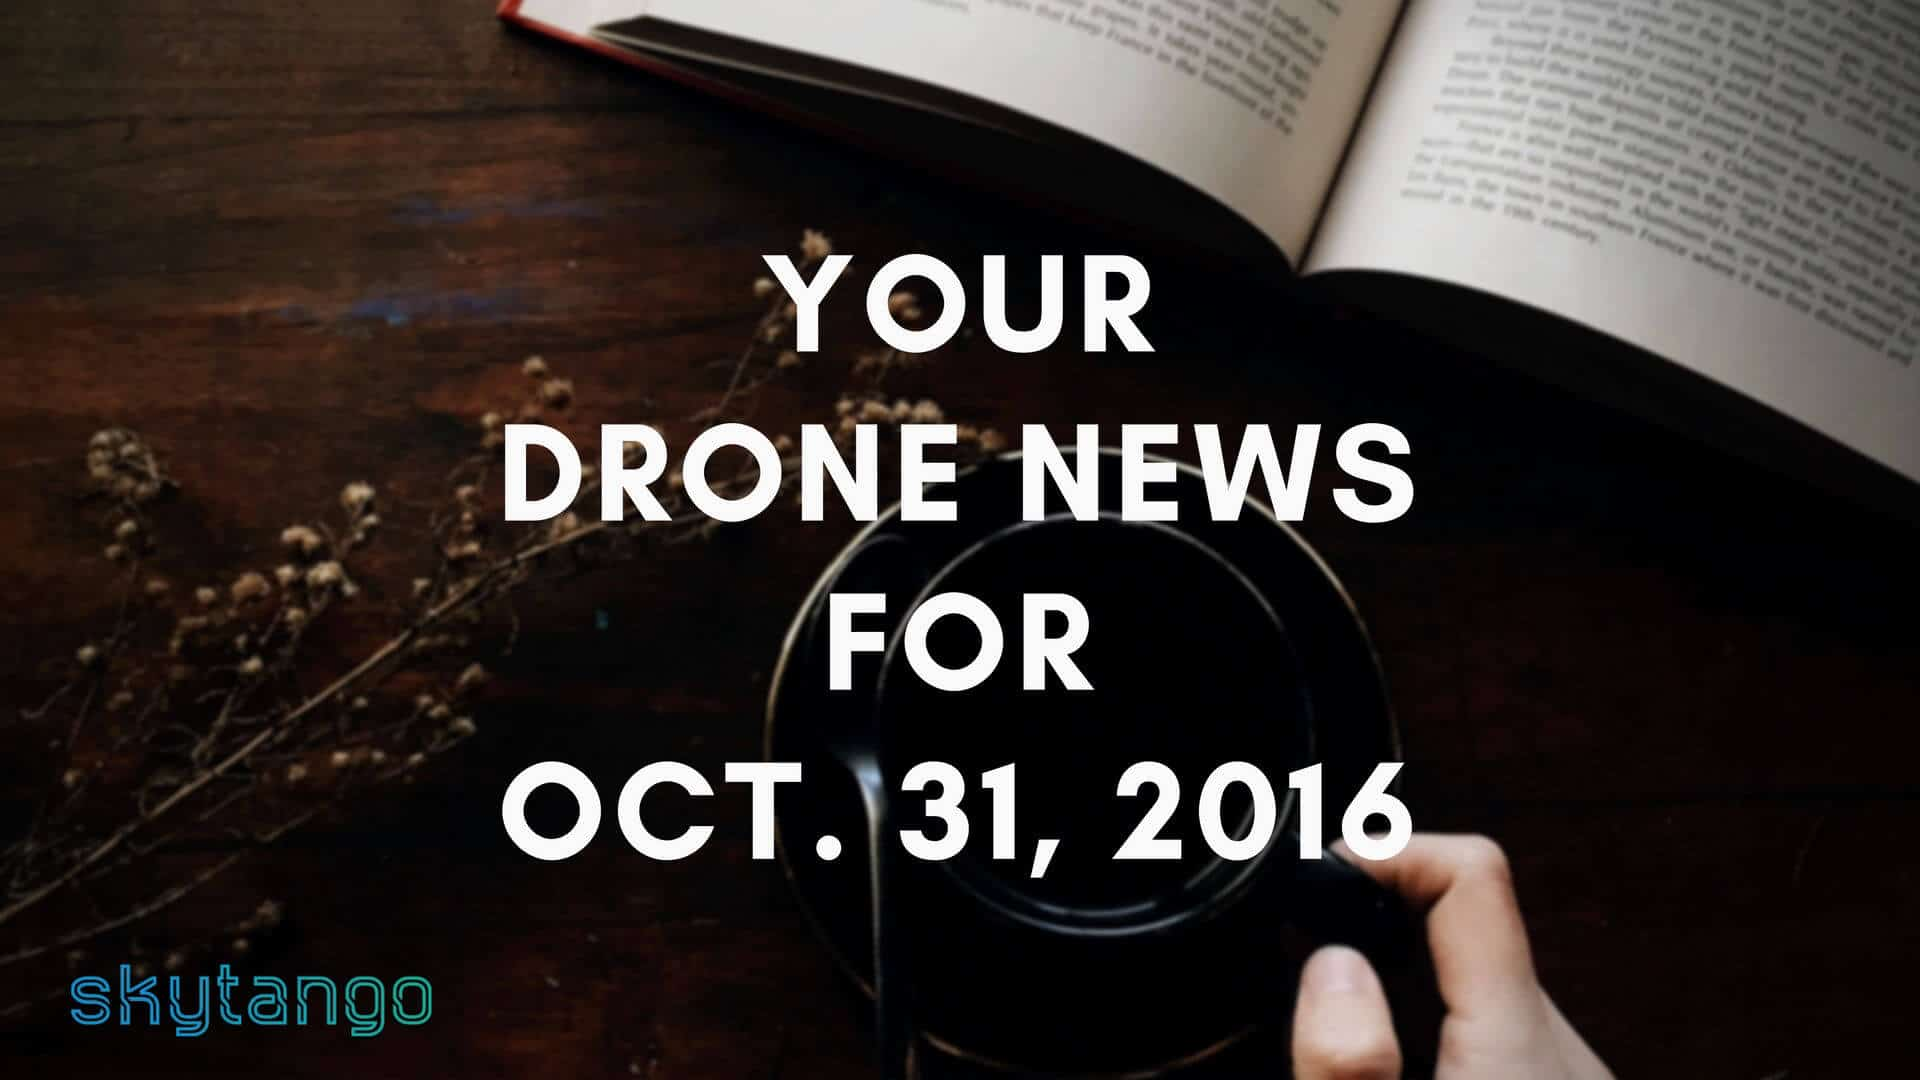 Top drone industry news 31 October 2016